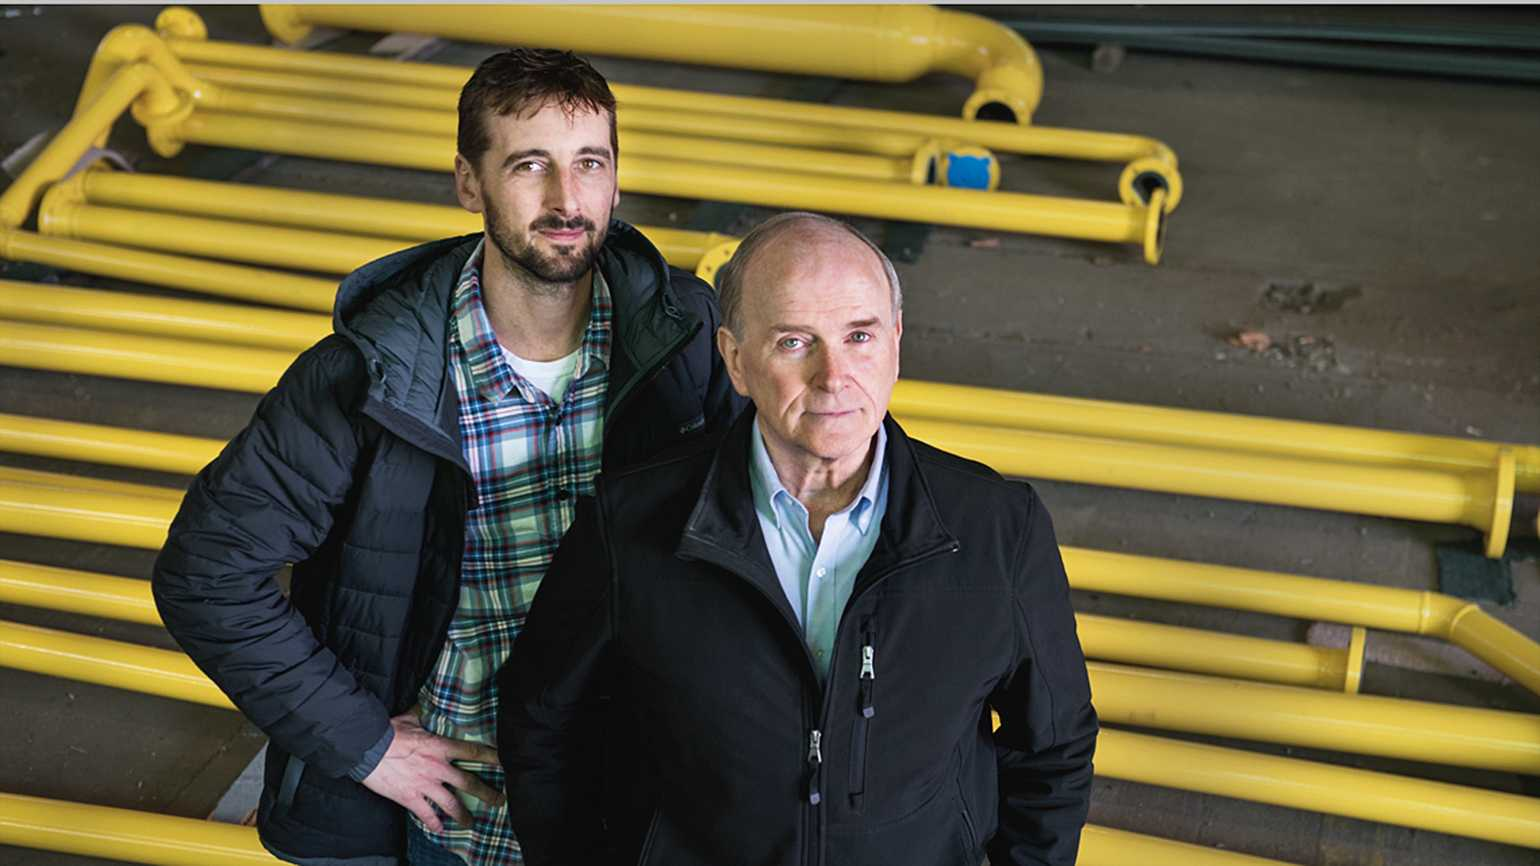 George started Envirosafe with his son, Mike